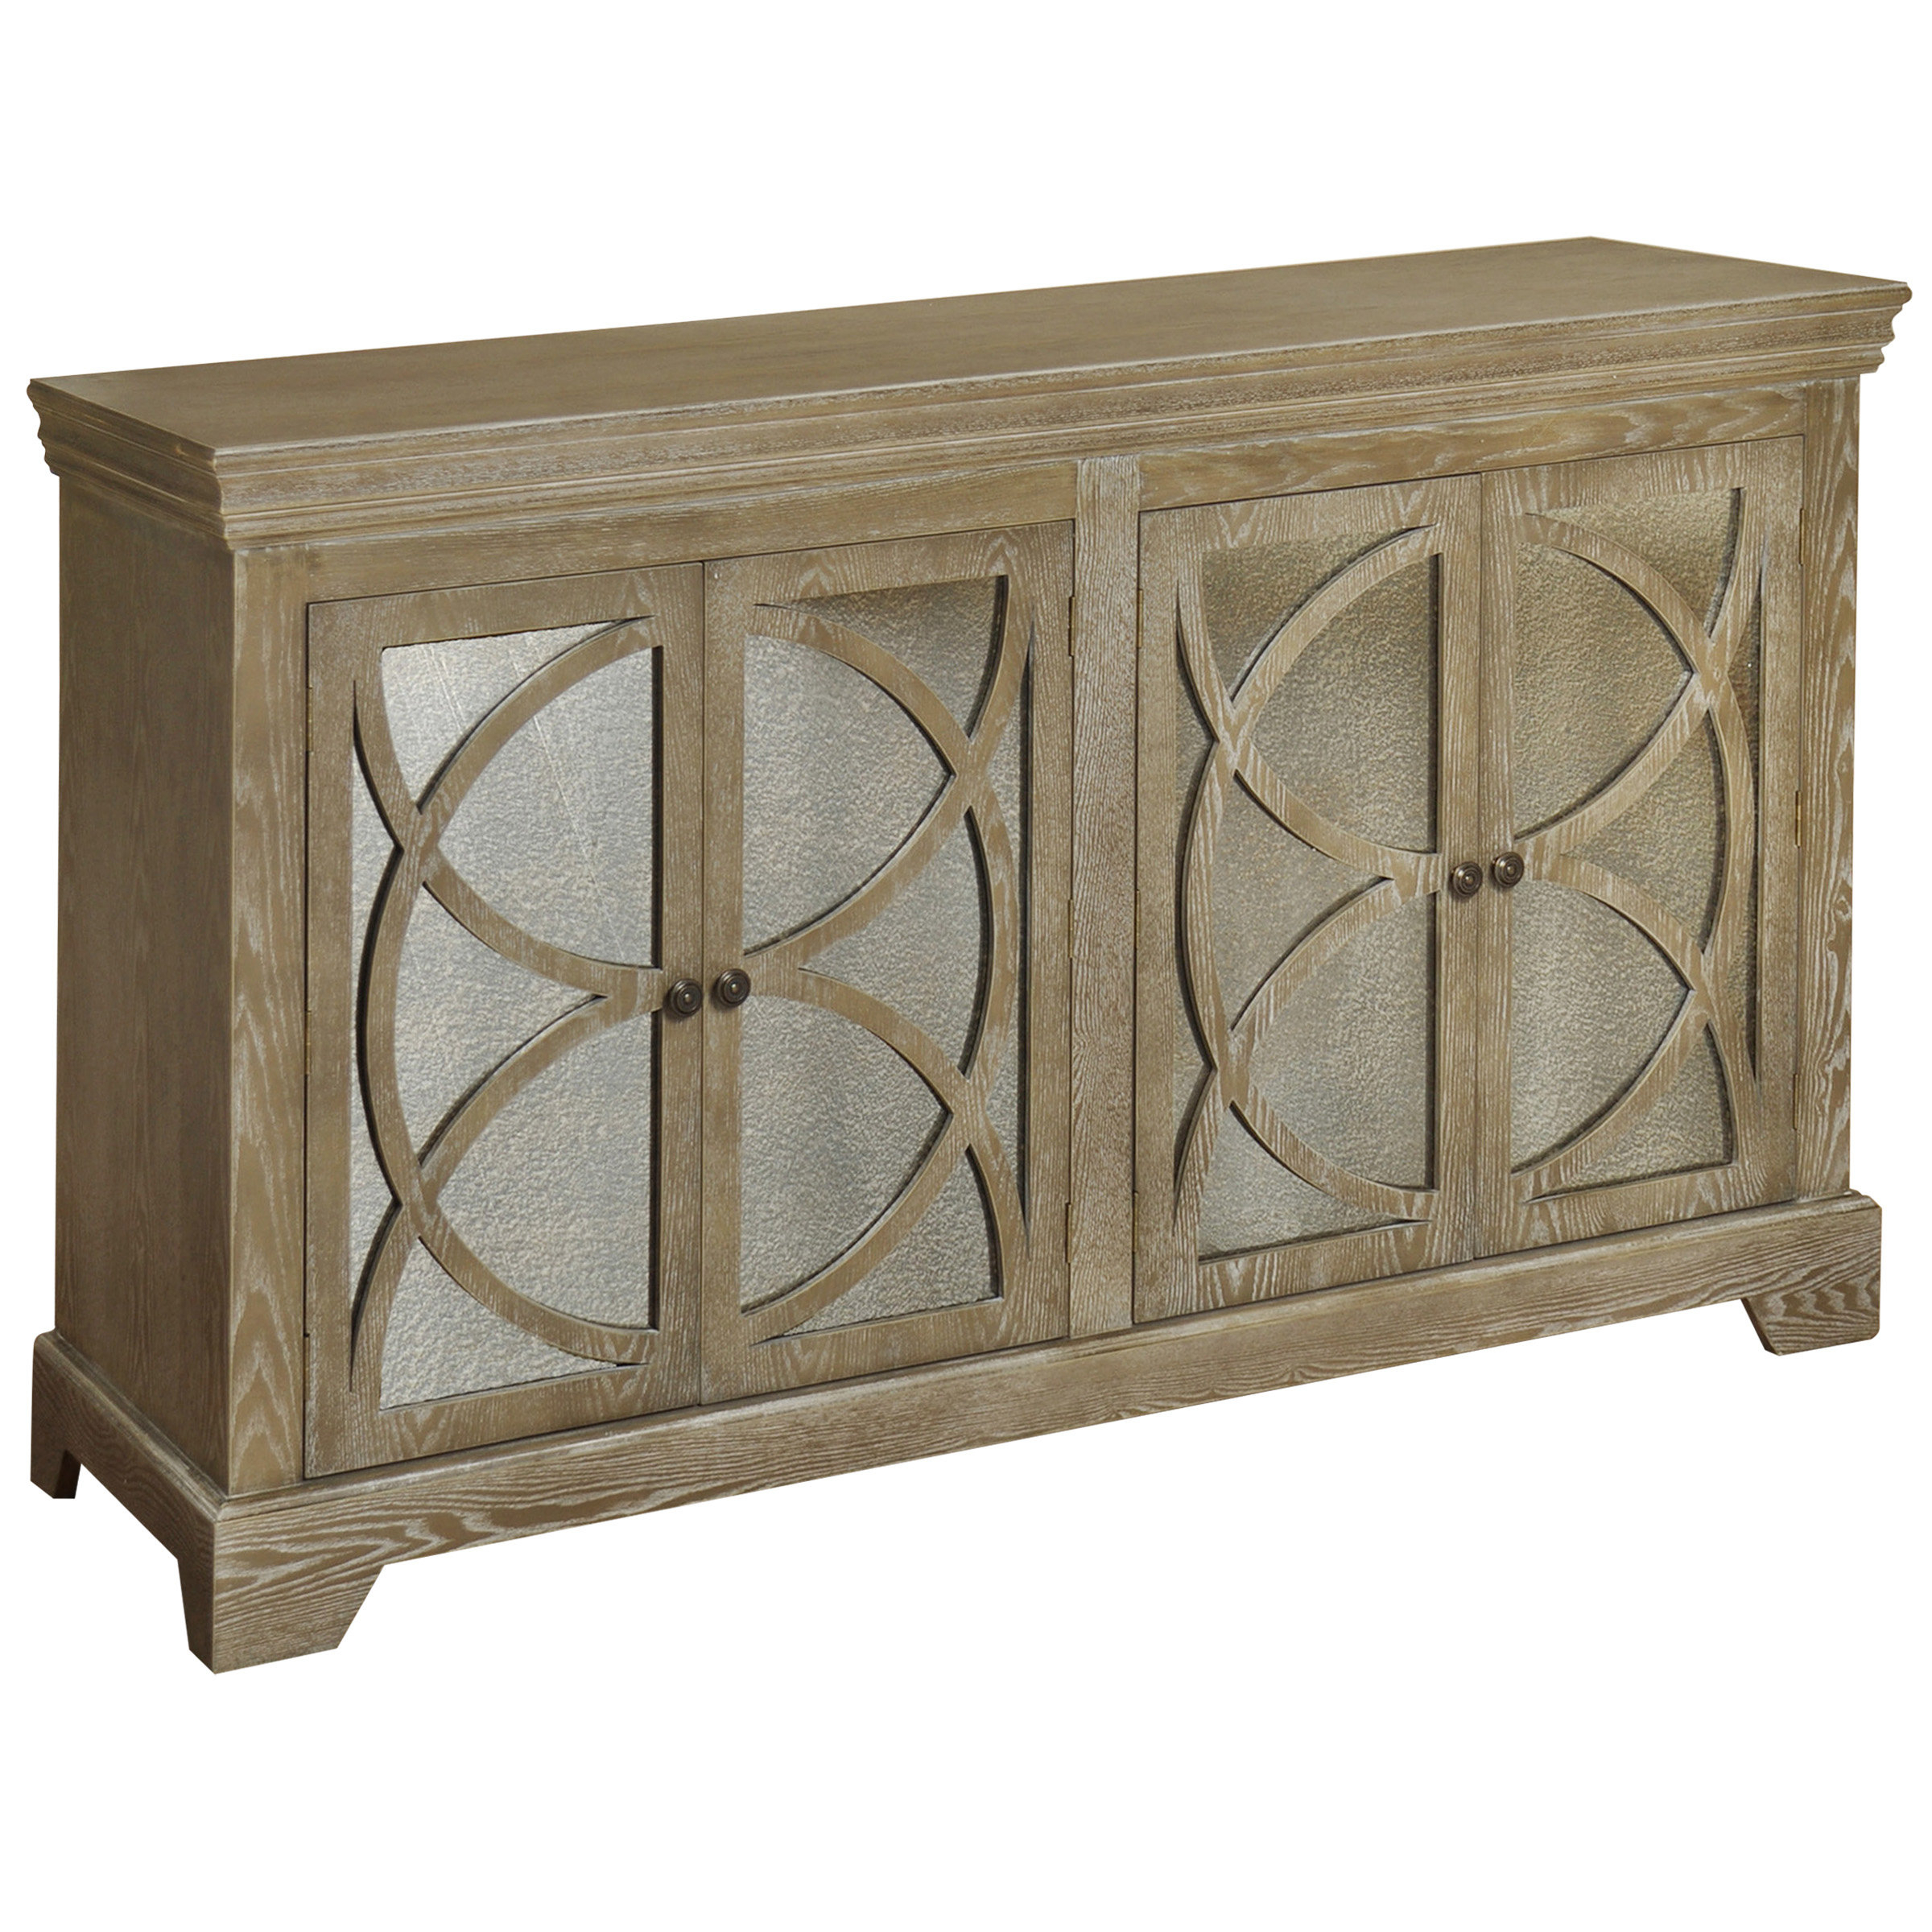 60 Inch Credenza | Wayfair Throughout Lainey Credenzas (View 13 of 20)